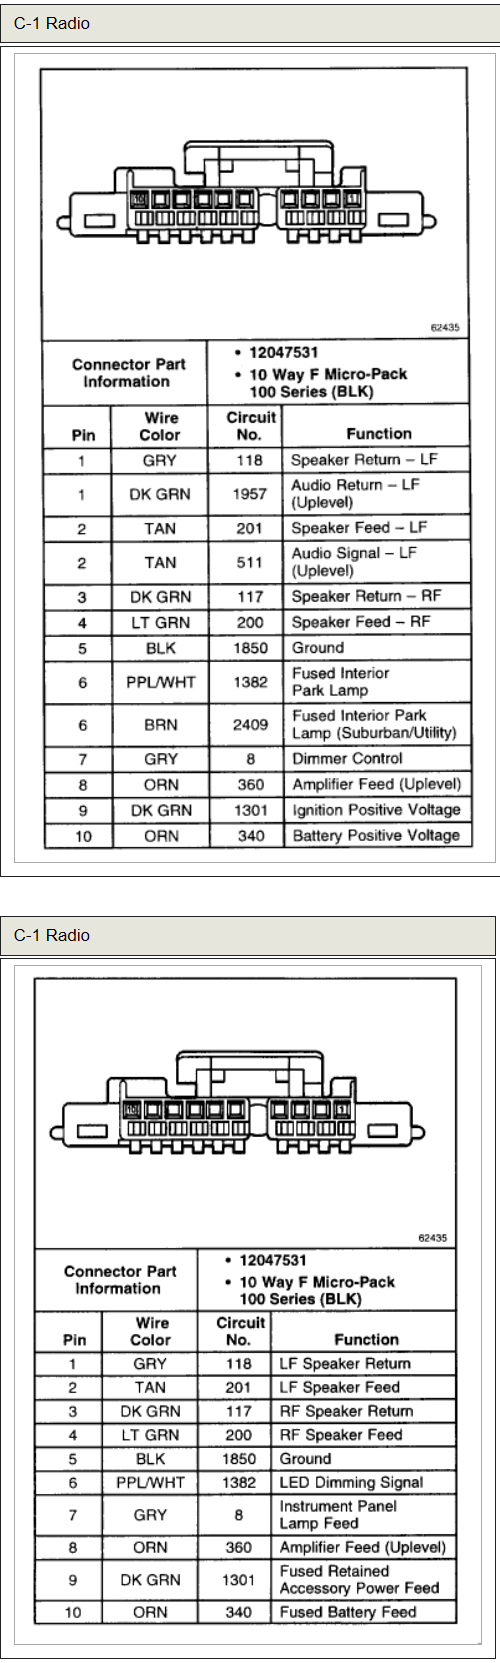 medium resolution of chevrolet car radio stereo audio wiring diagram autoradio connector wire installation schematic schema esquema de conexiones anschlusskammern konektor